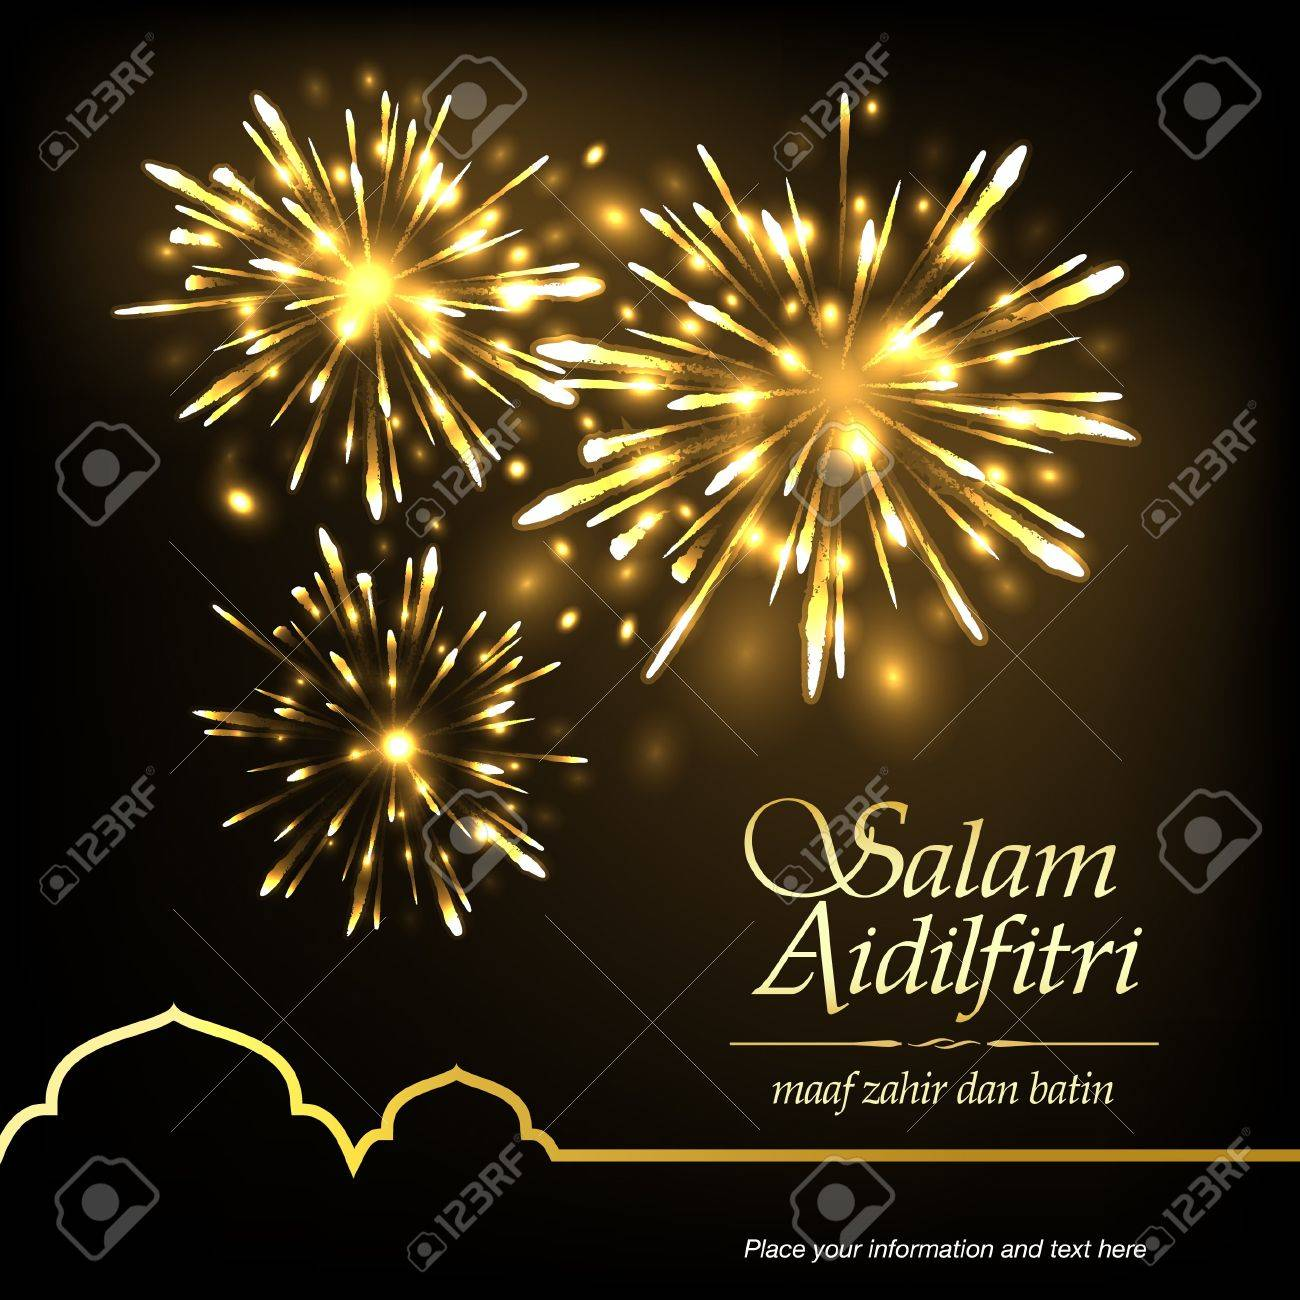 Ramadan graphic design Stock Vector - 21036441